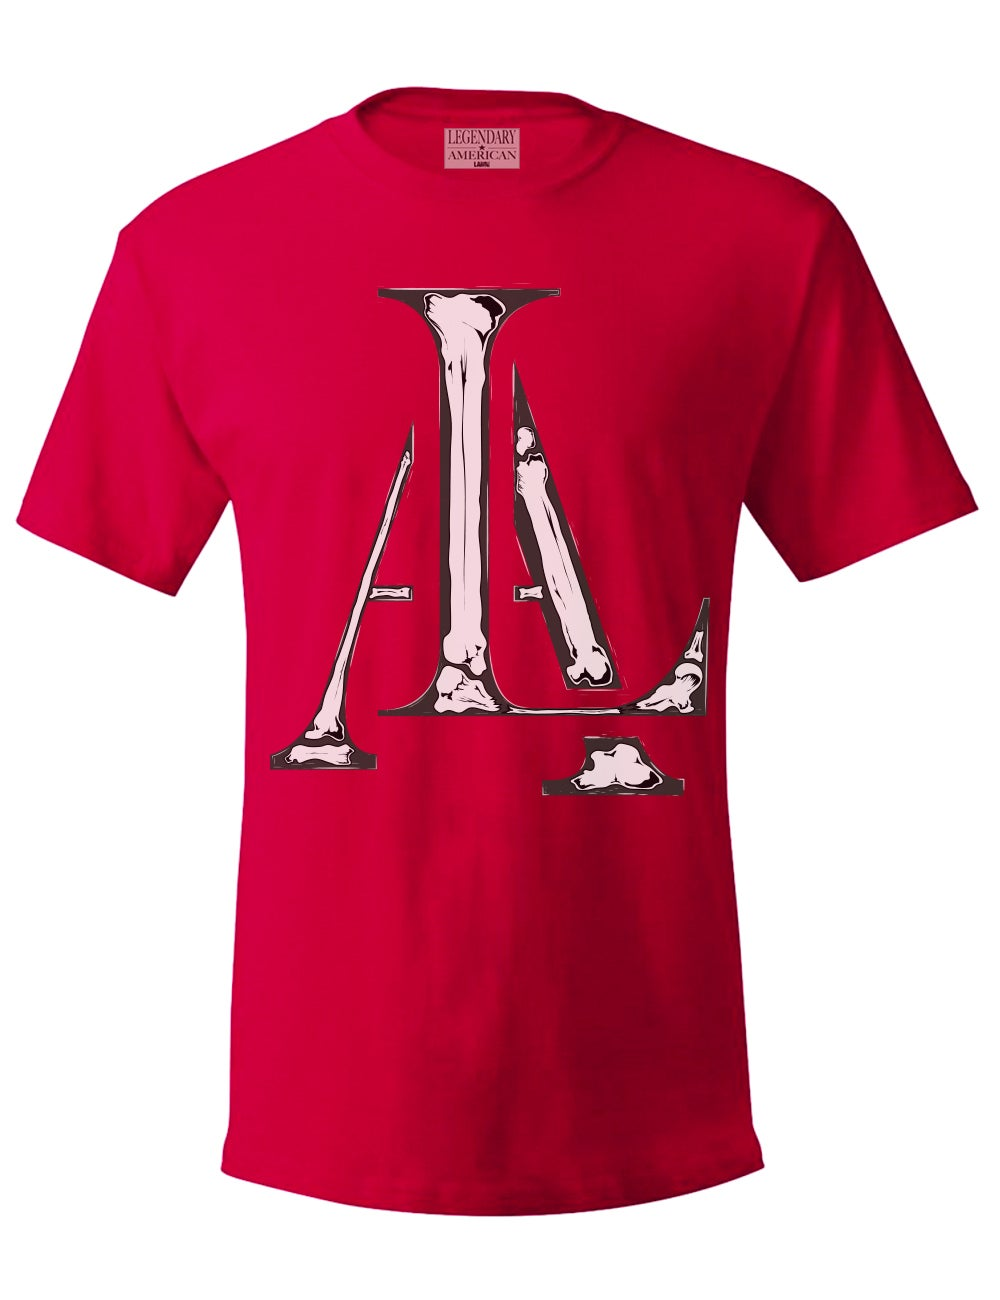 Image of Legendary American LA Bones tee in red